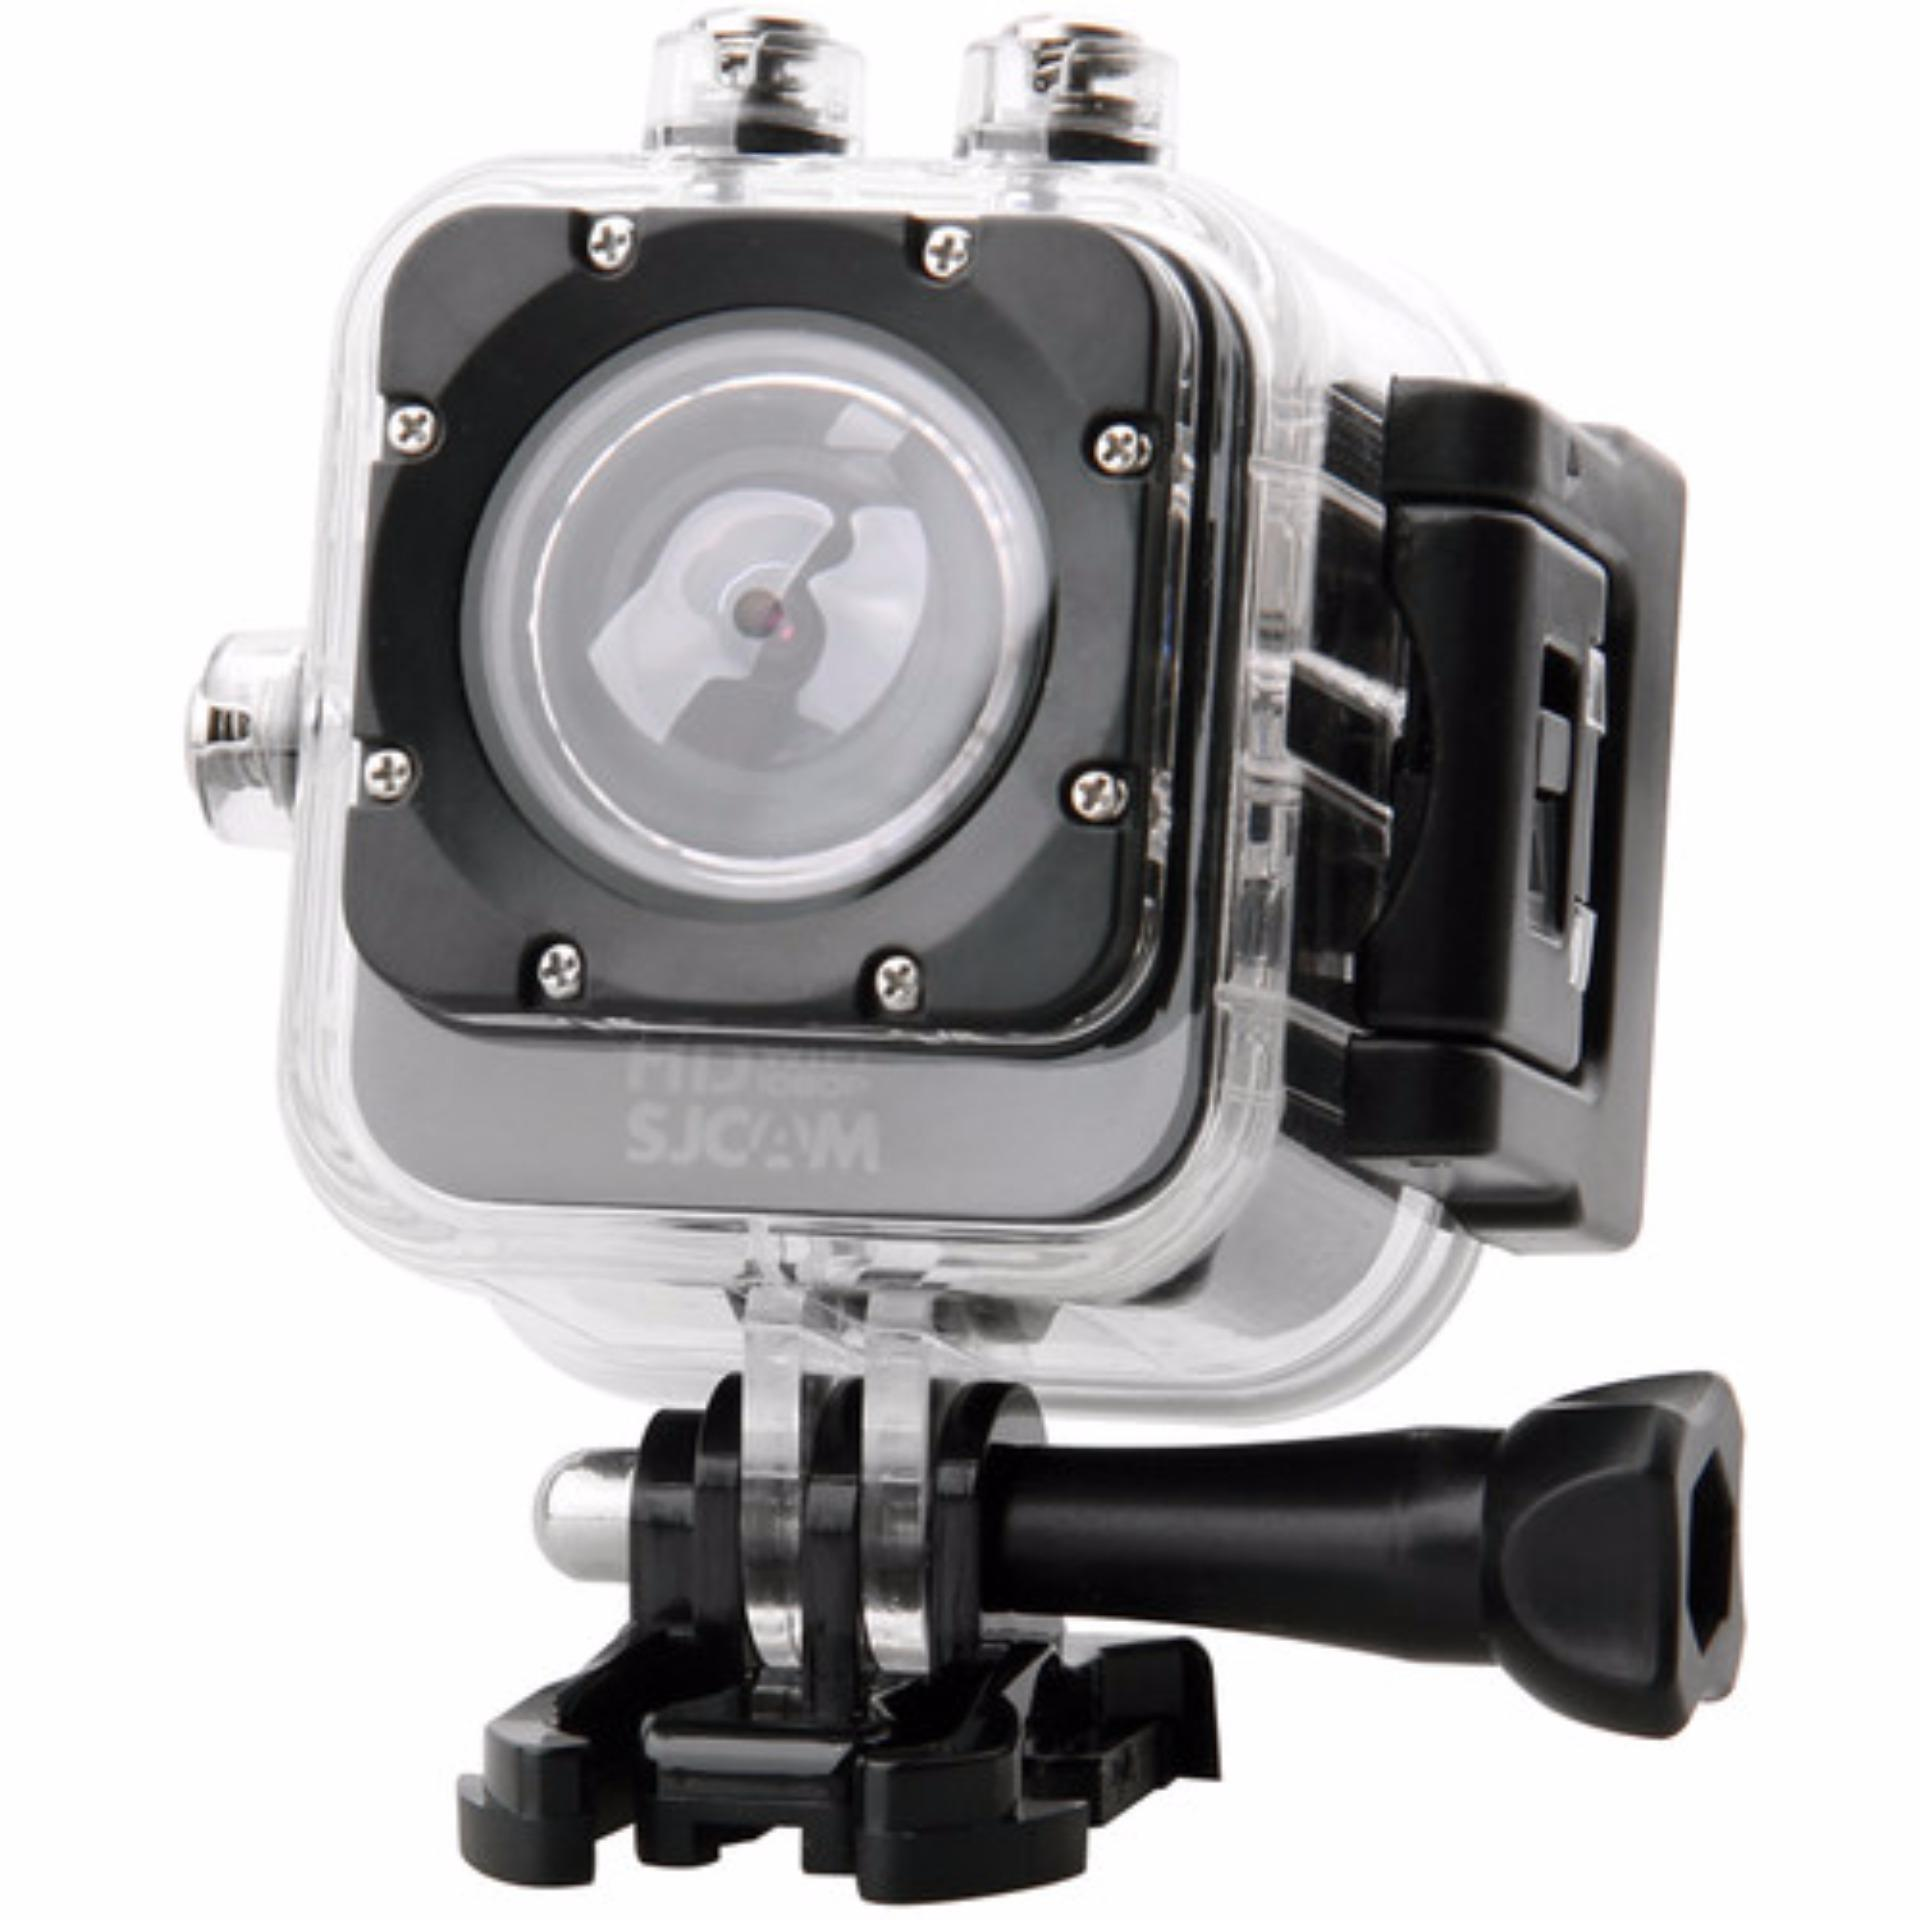 SJCAM M10 Full HD Action Camera with Wi-Fi (Black)